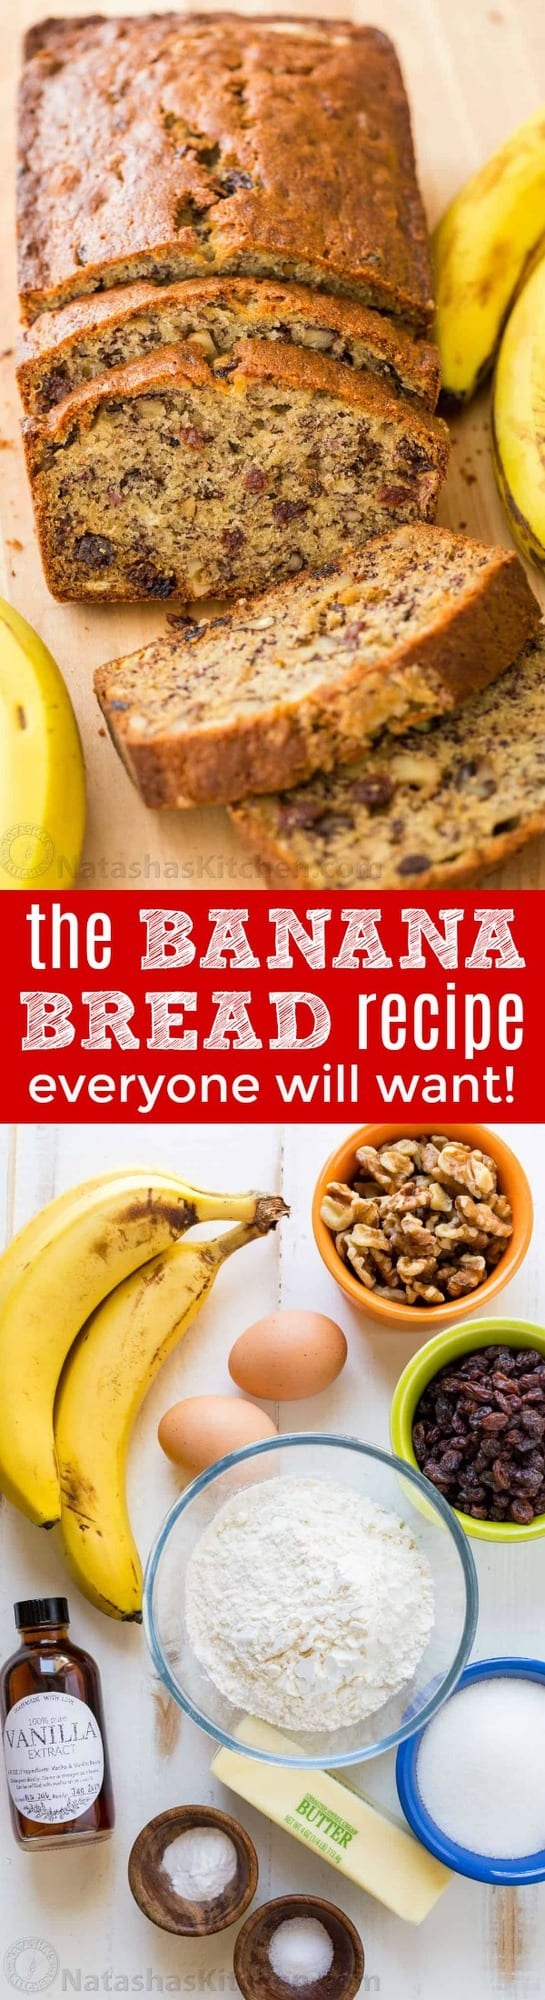 This Banana Bread Recipe is loaded with ripe bananas, tangy sweet raisins and toasted walnuts making it a banana nut bread. One of our favorite ripe banana recipes and even better with overripe bananas! This banana nut bread is super moist, easy and makes a great breakfast on-the-go. | natashaskitchen.com